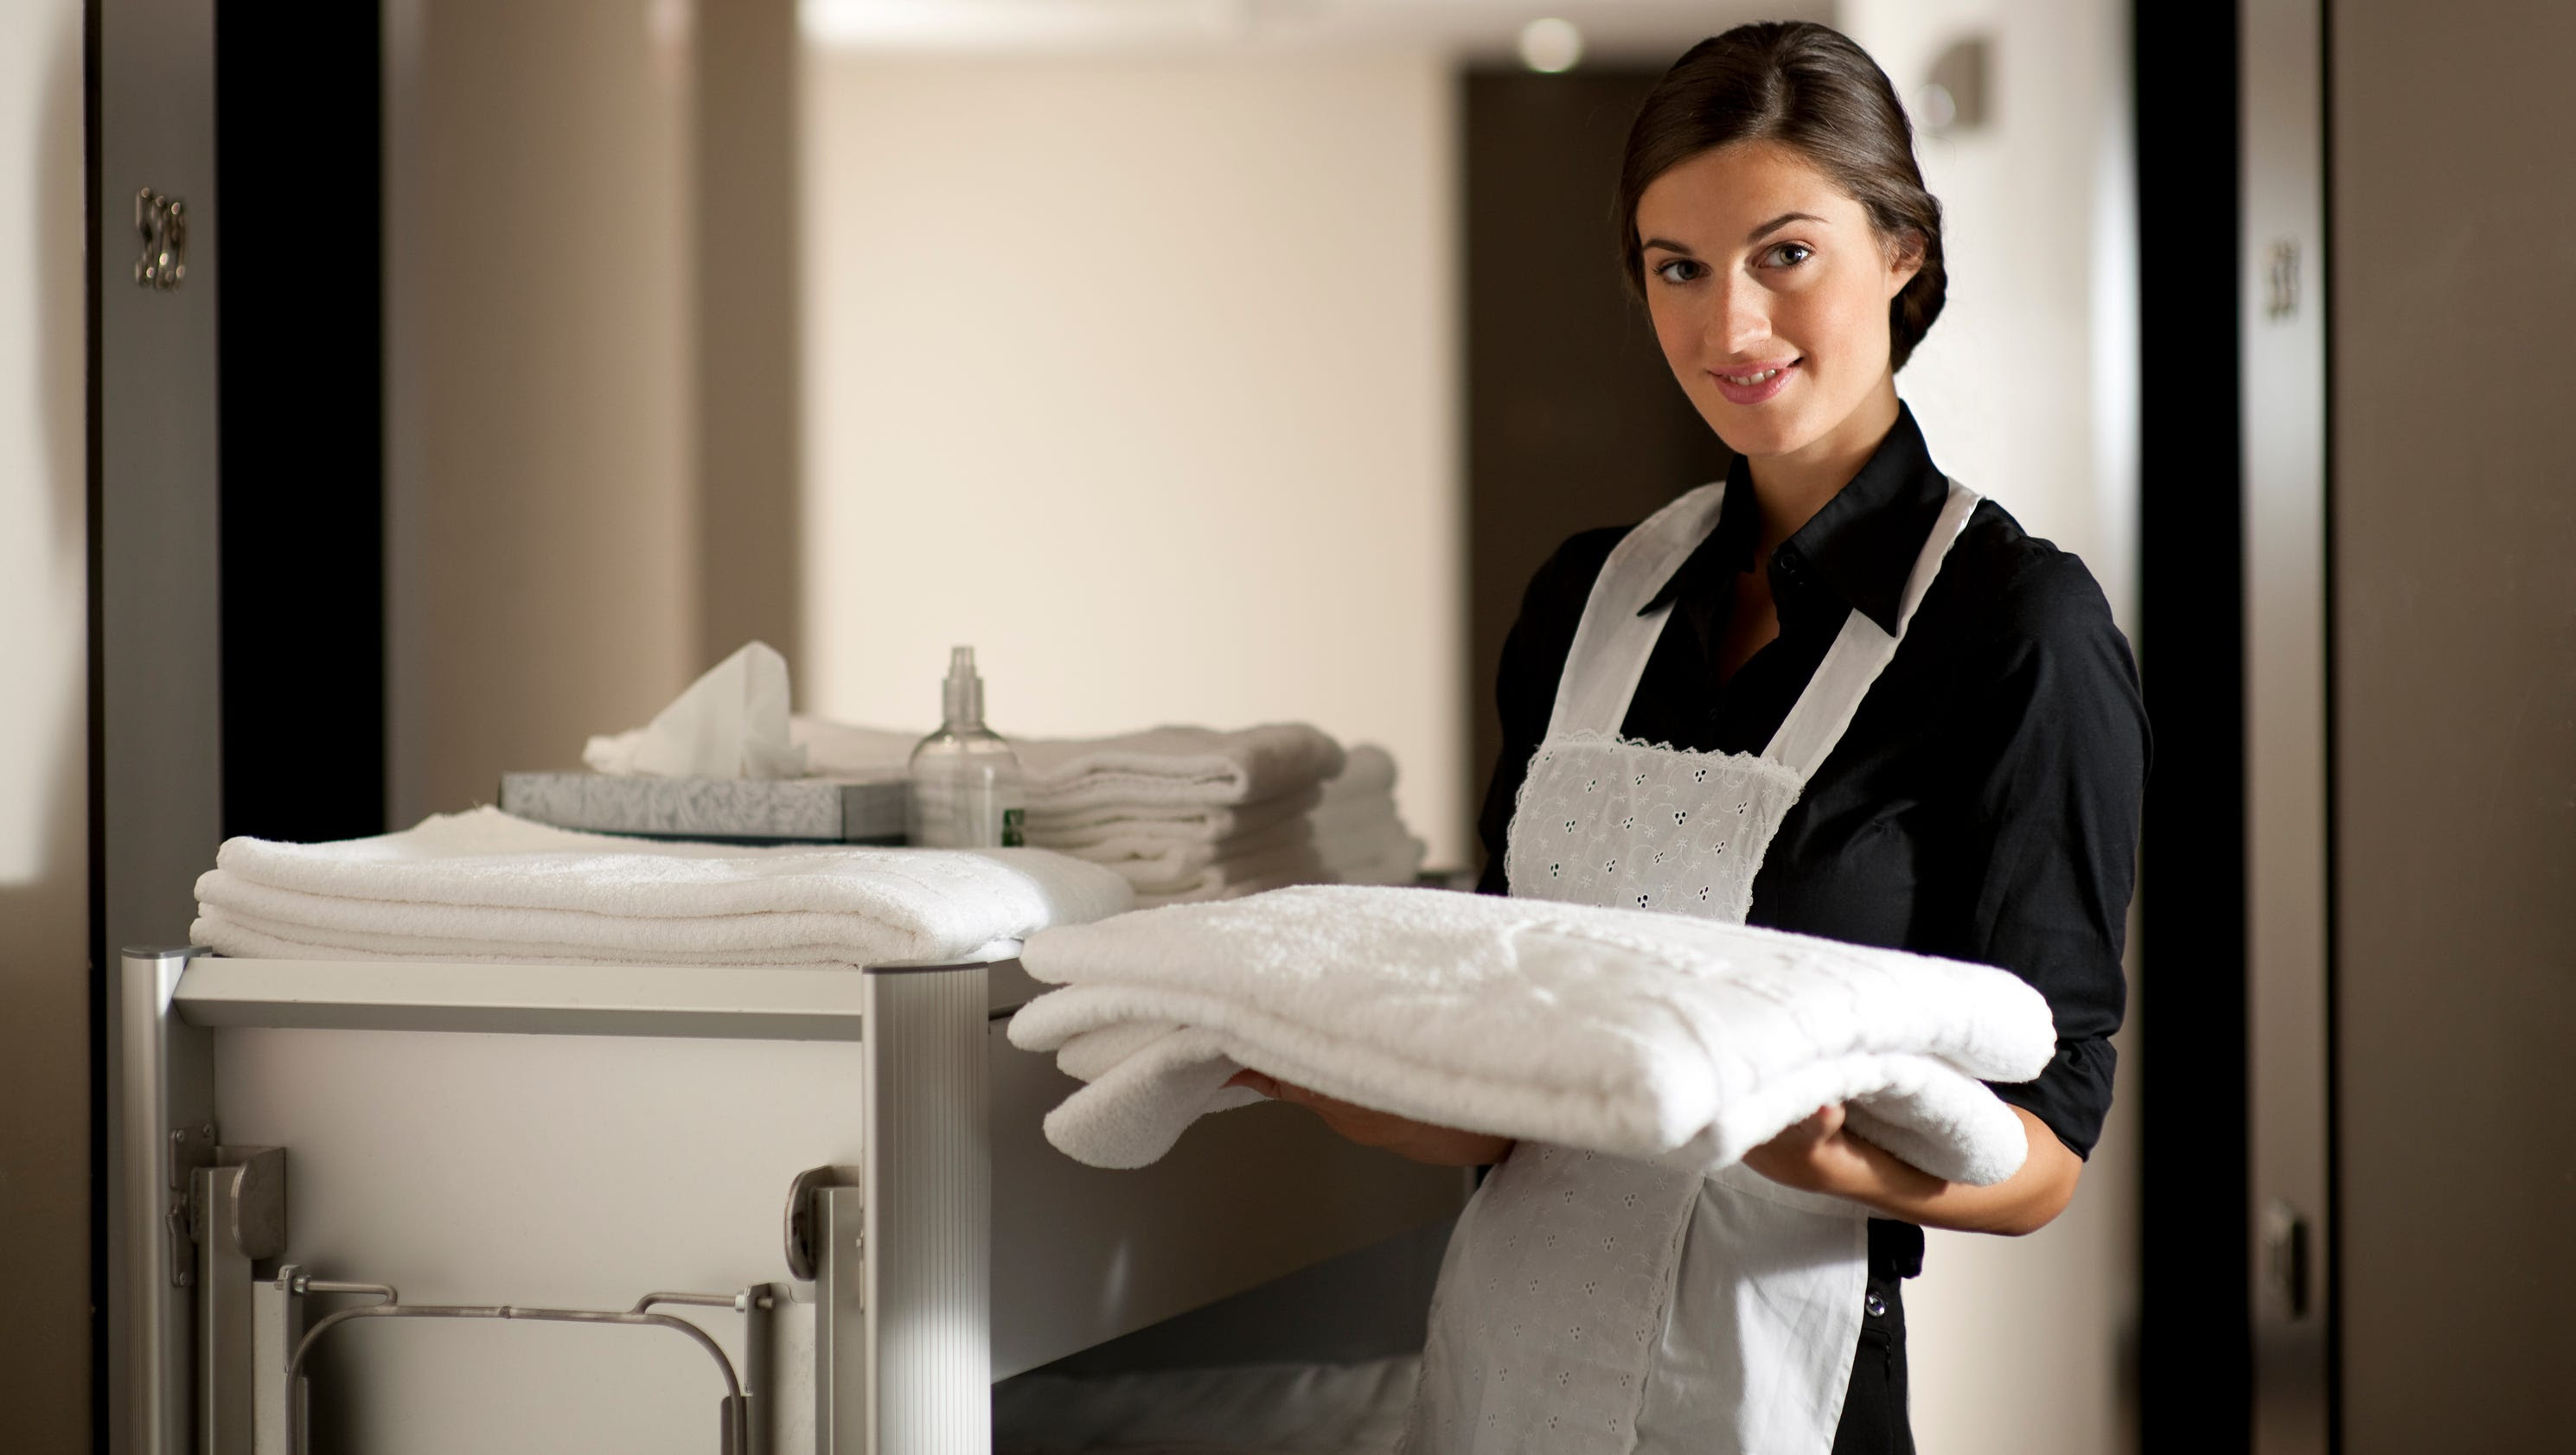 Image result for hotel maid